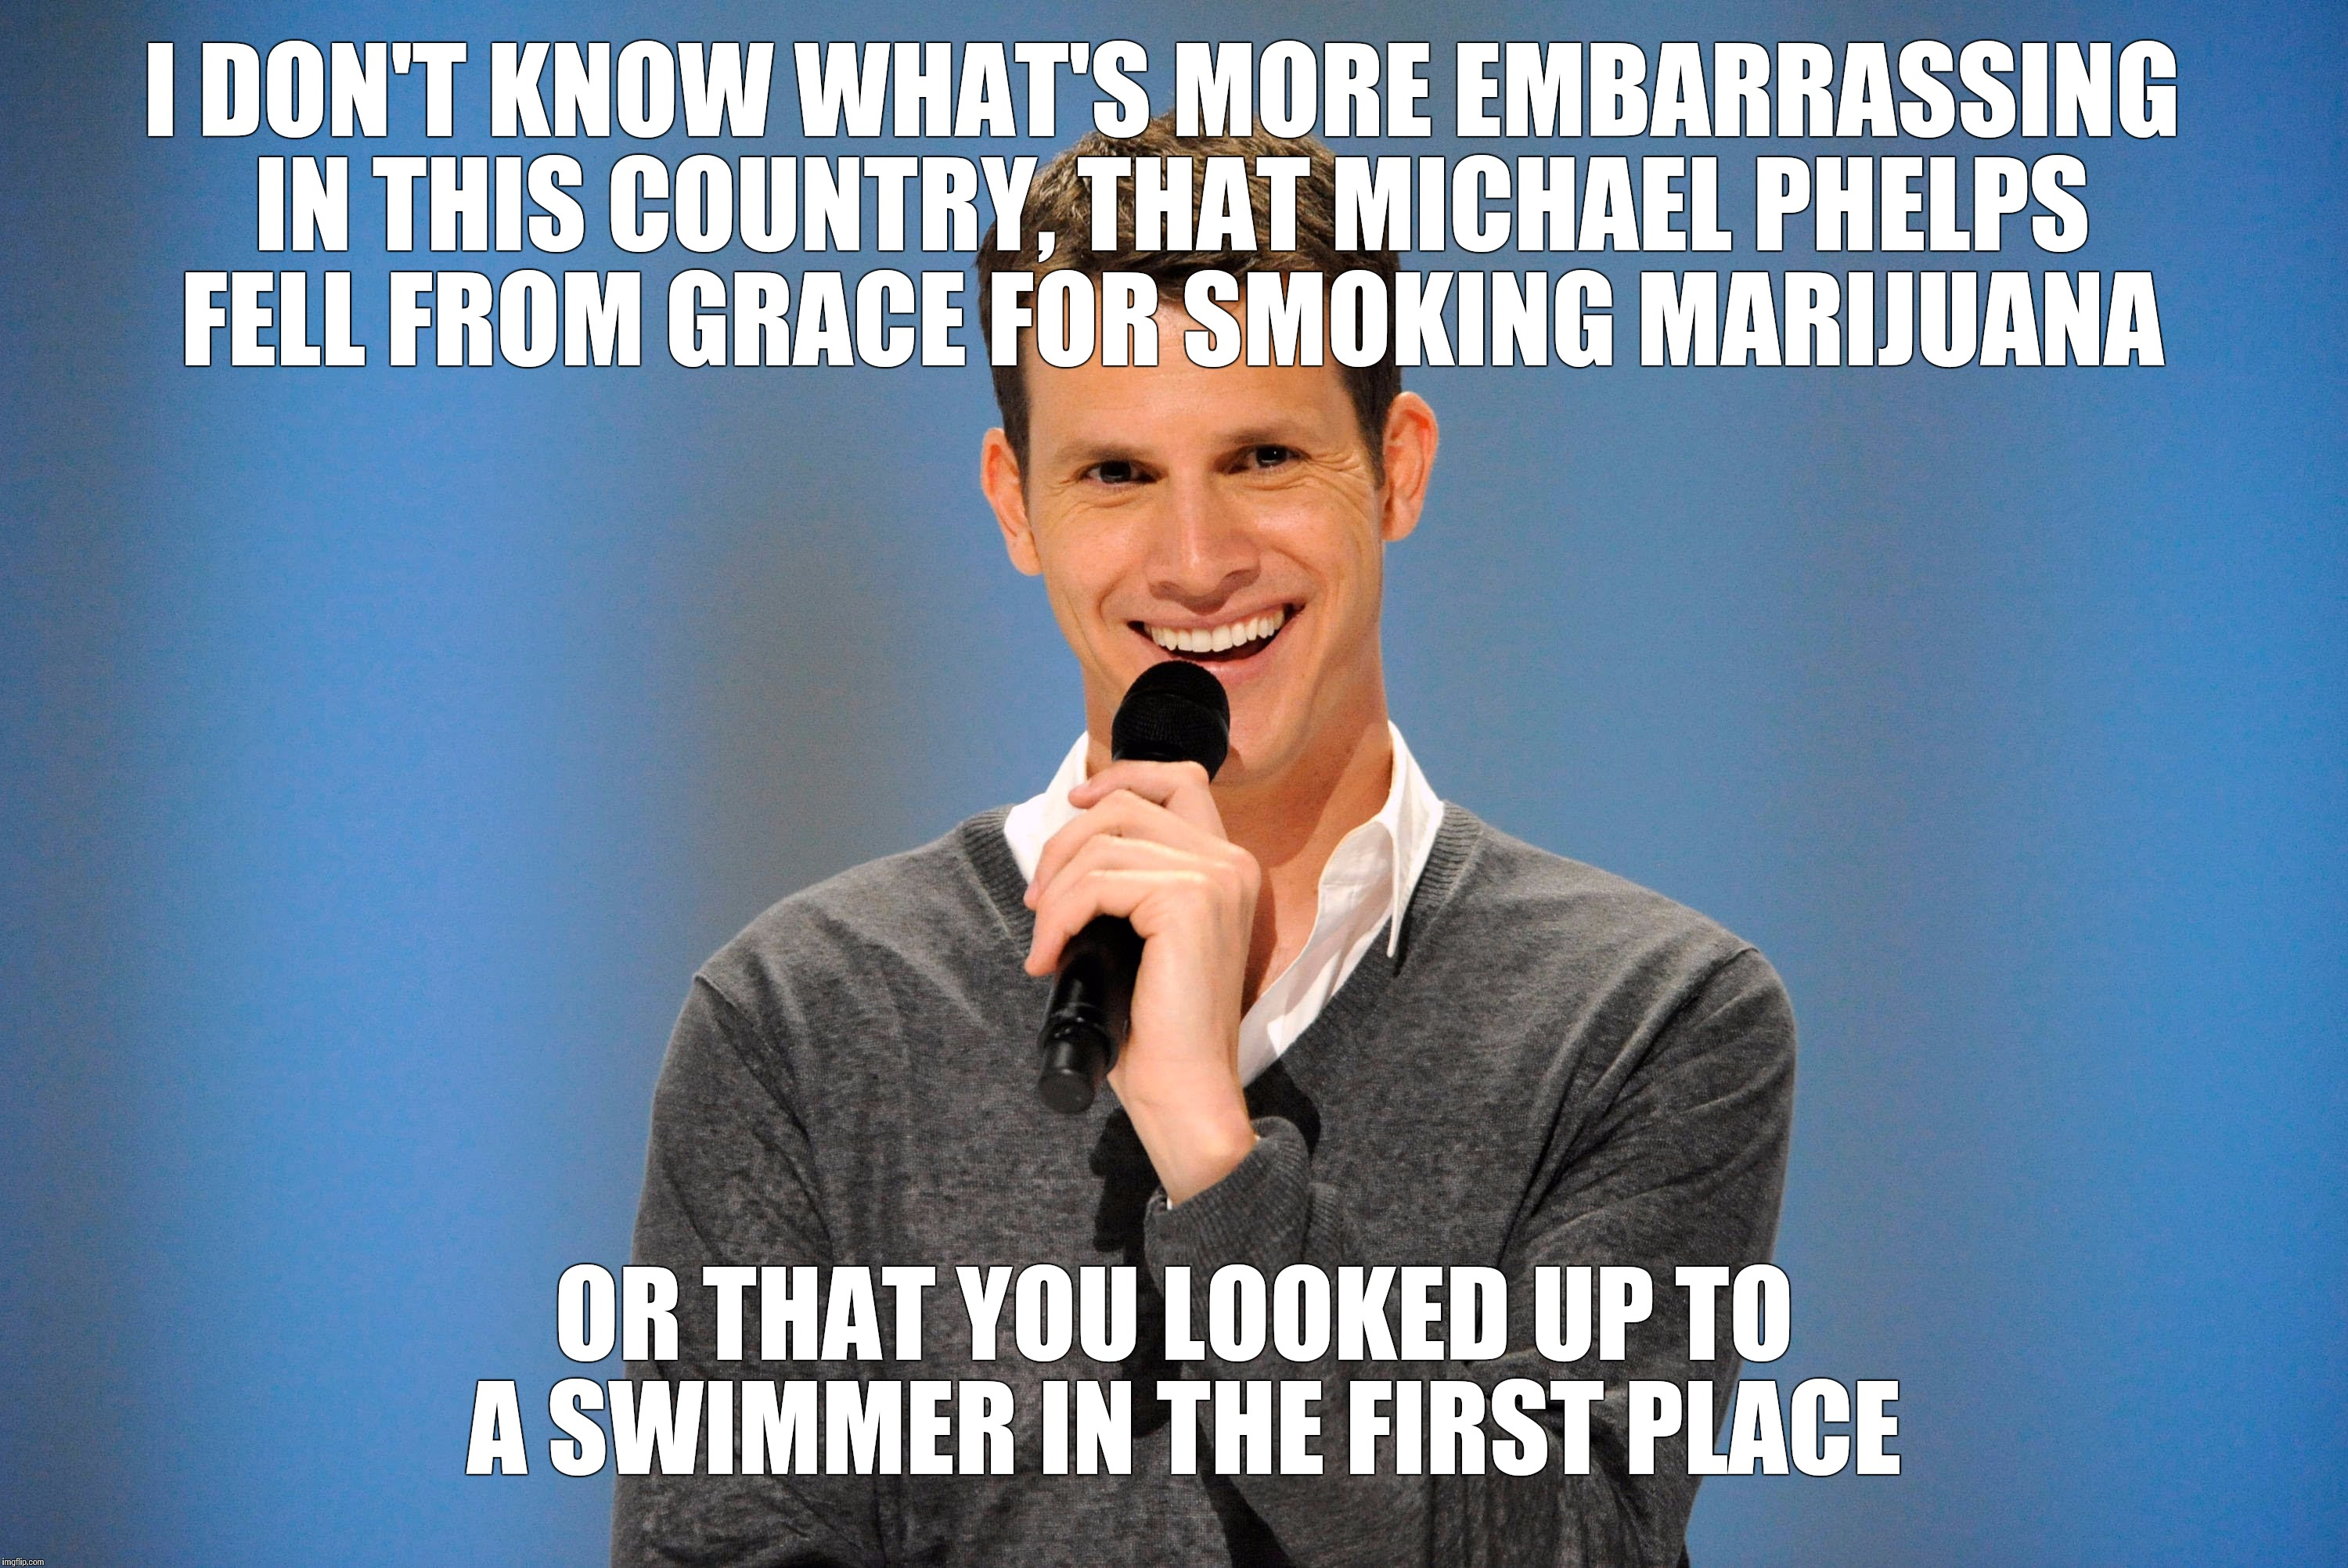 I DON'T KNOW WHAT'S MORE EMBARRASSING IN THIS COUNTRY, THAT MICHAEL PHELPS FELL FROM GRACE FOR SMOKING MARIJUANA OR THAT YOU LOOKED UP TO A  | made w/ Imgflip meme maker